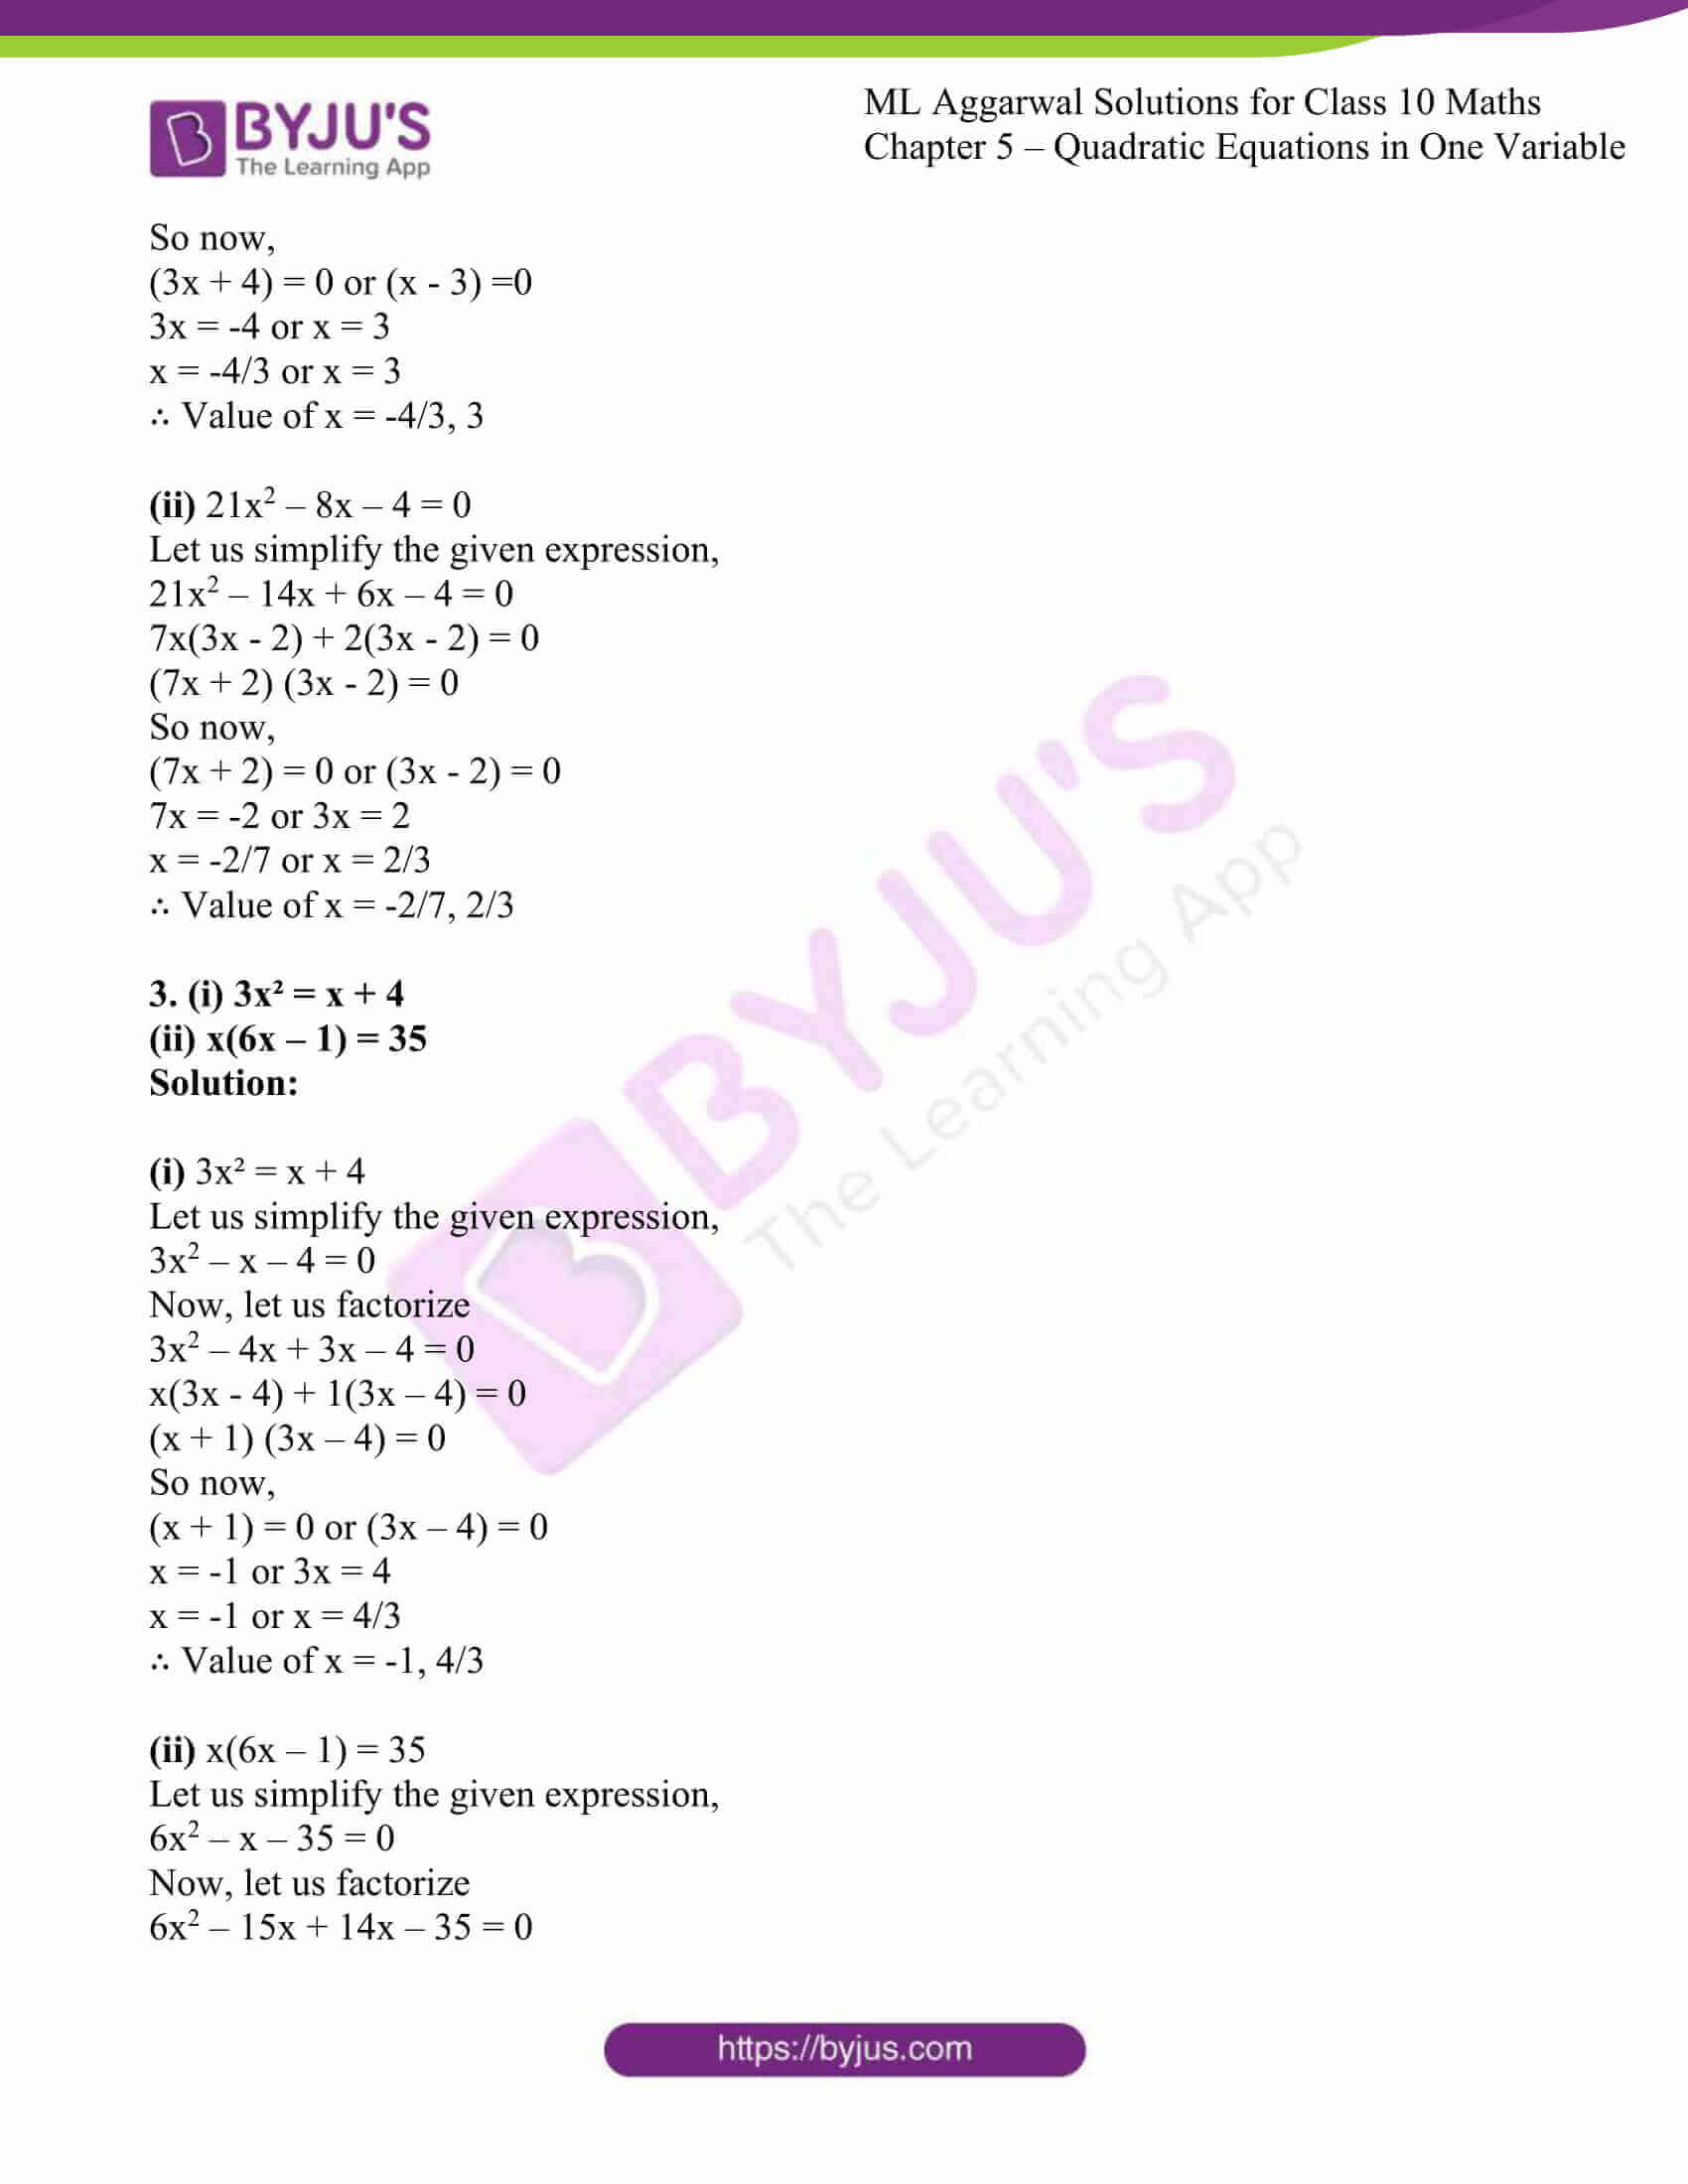 ml aggarwal solutions class 10 maths chapter 5 07